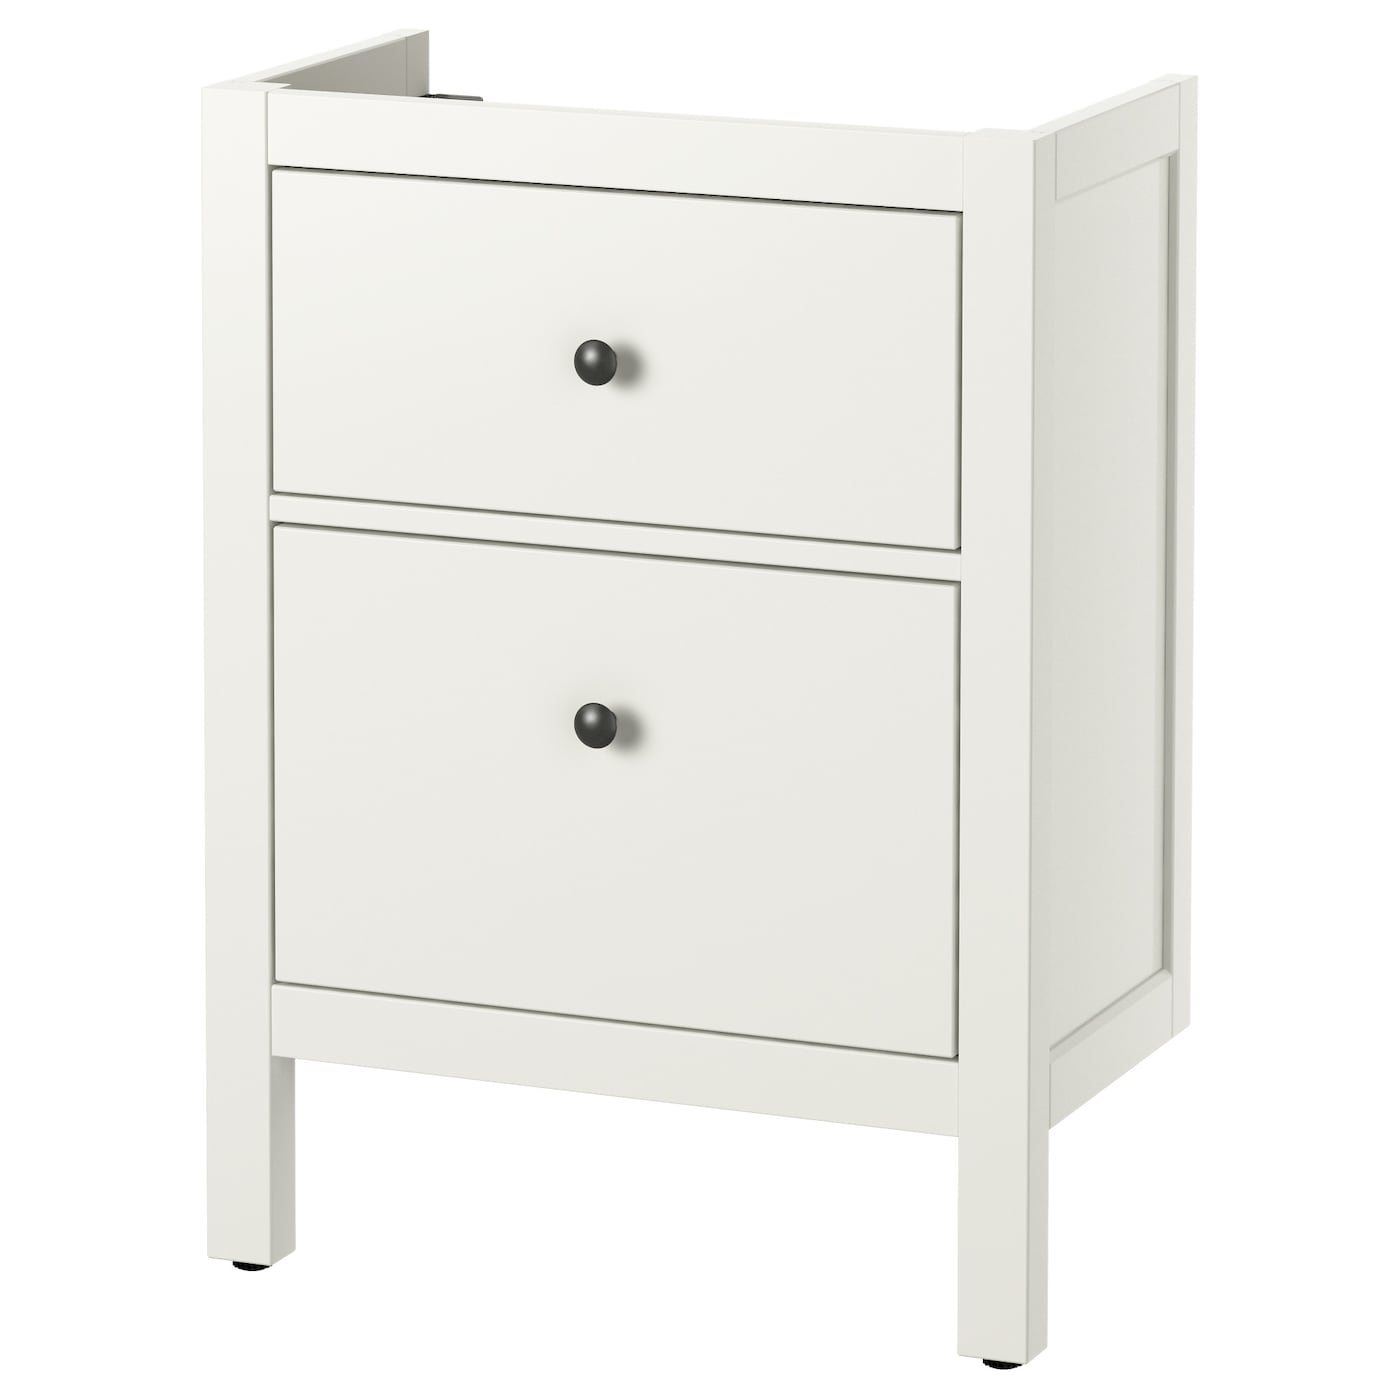 hemnes meuble lavabo 2tir blanc 60 x 32 x 83 cm ikea. Black Bedroom Furniture Sets. Home Design Ideas